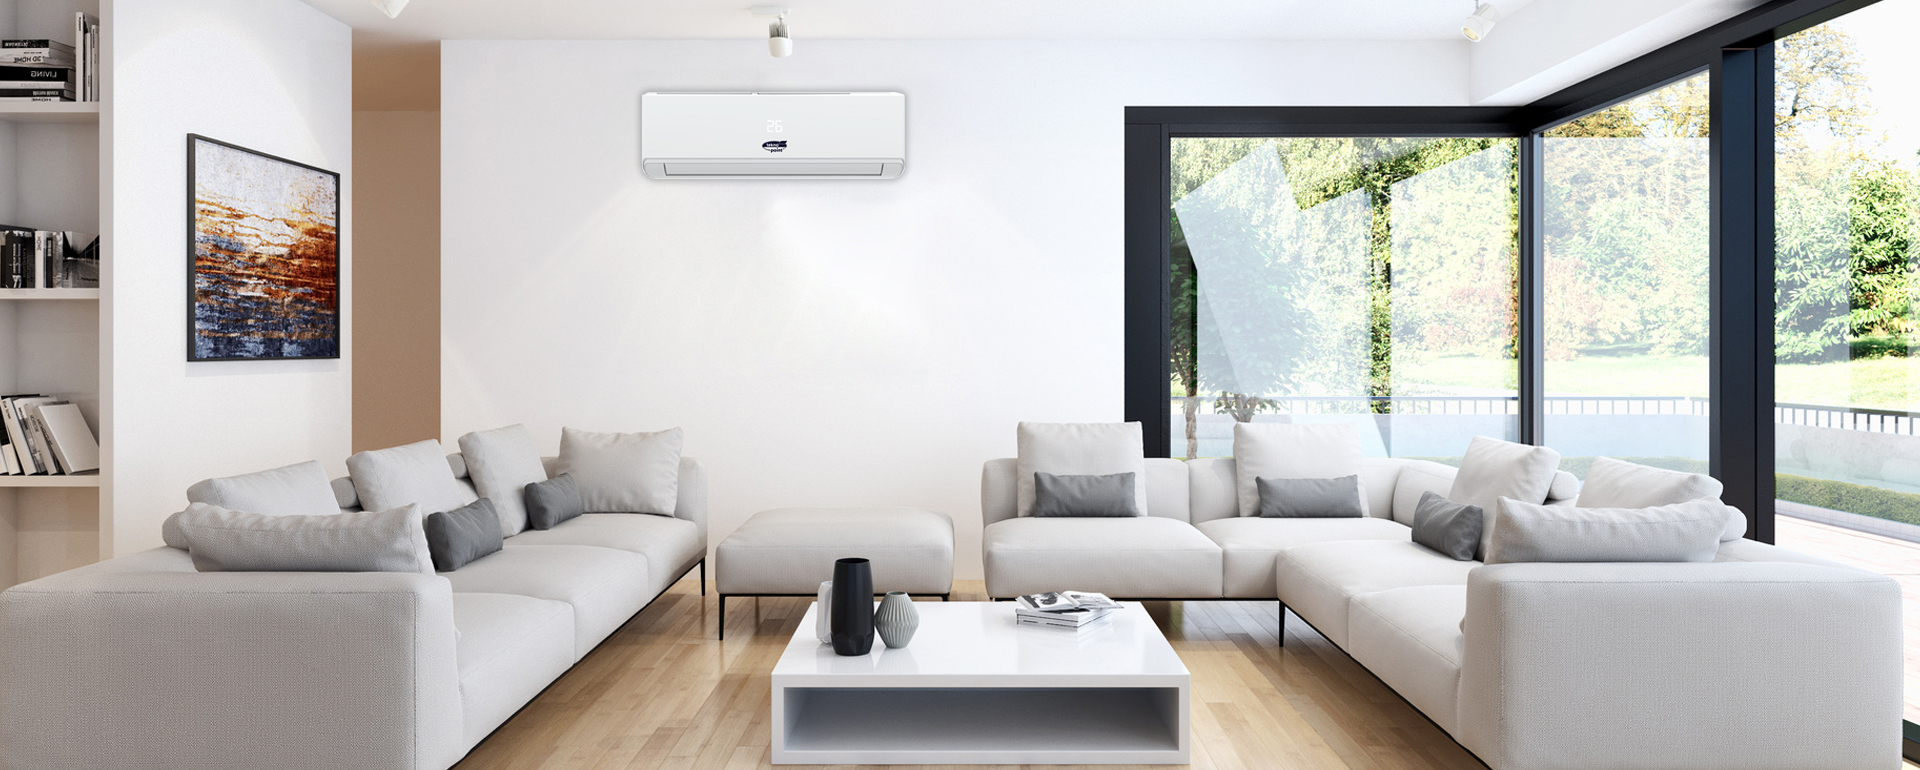 Air conditioning systems The best solutions